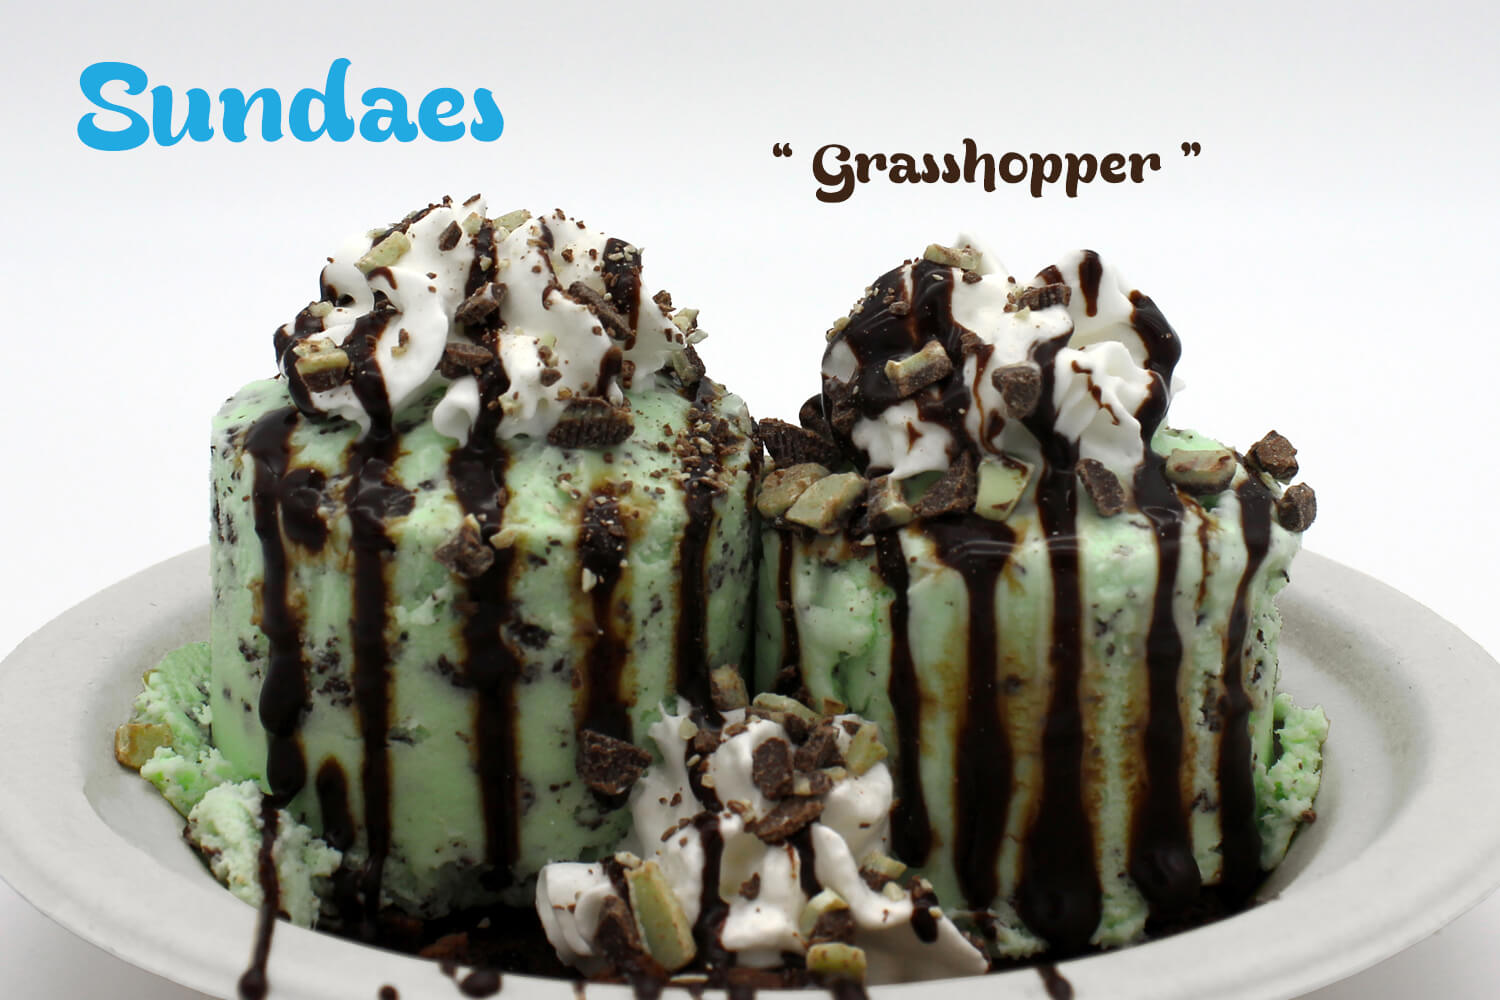 Sundae Grasshopper - Home